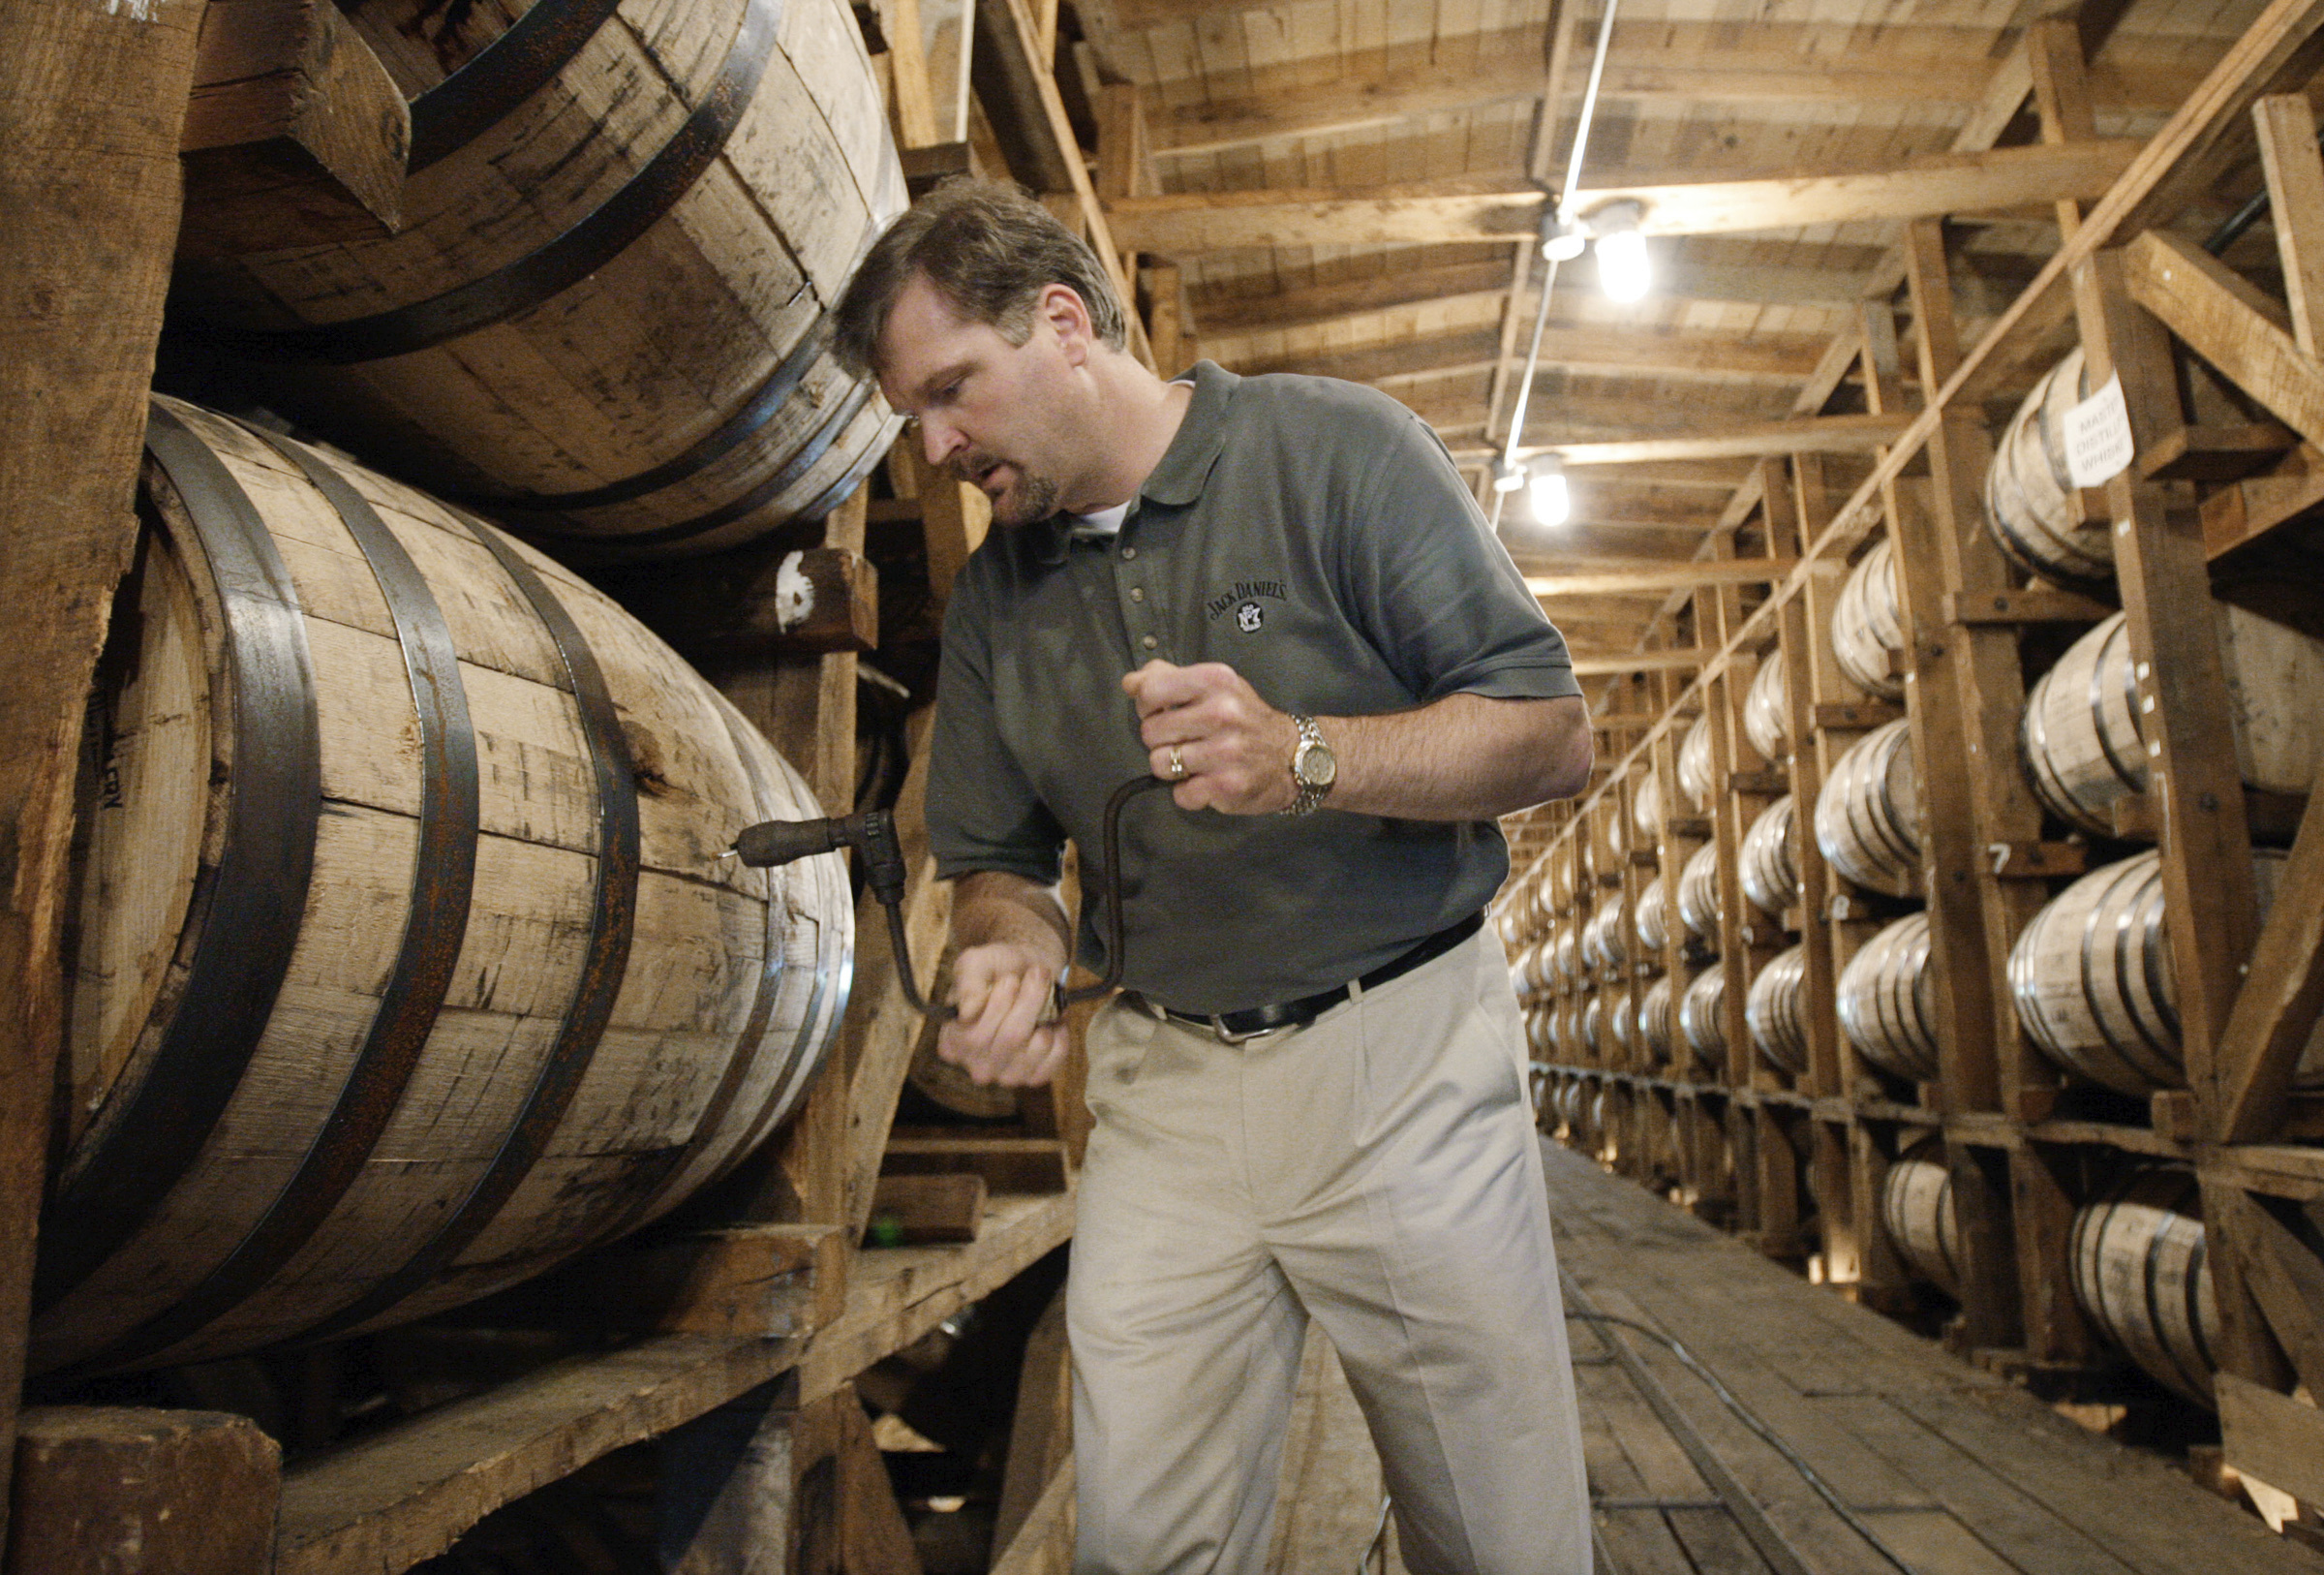 Jeff Arnett, the master distiller at the Jack Daniel Distillery in Lynchburg, Tennessee., drills a hole in a barrel of whiskey in one of the aging houses at the distillery in 2009.